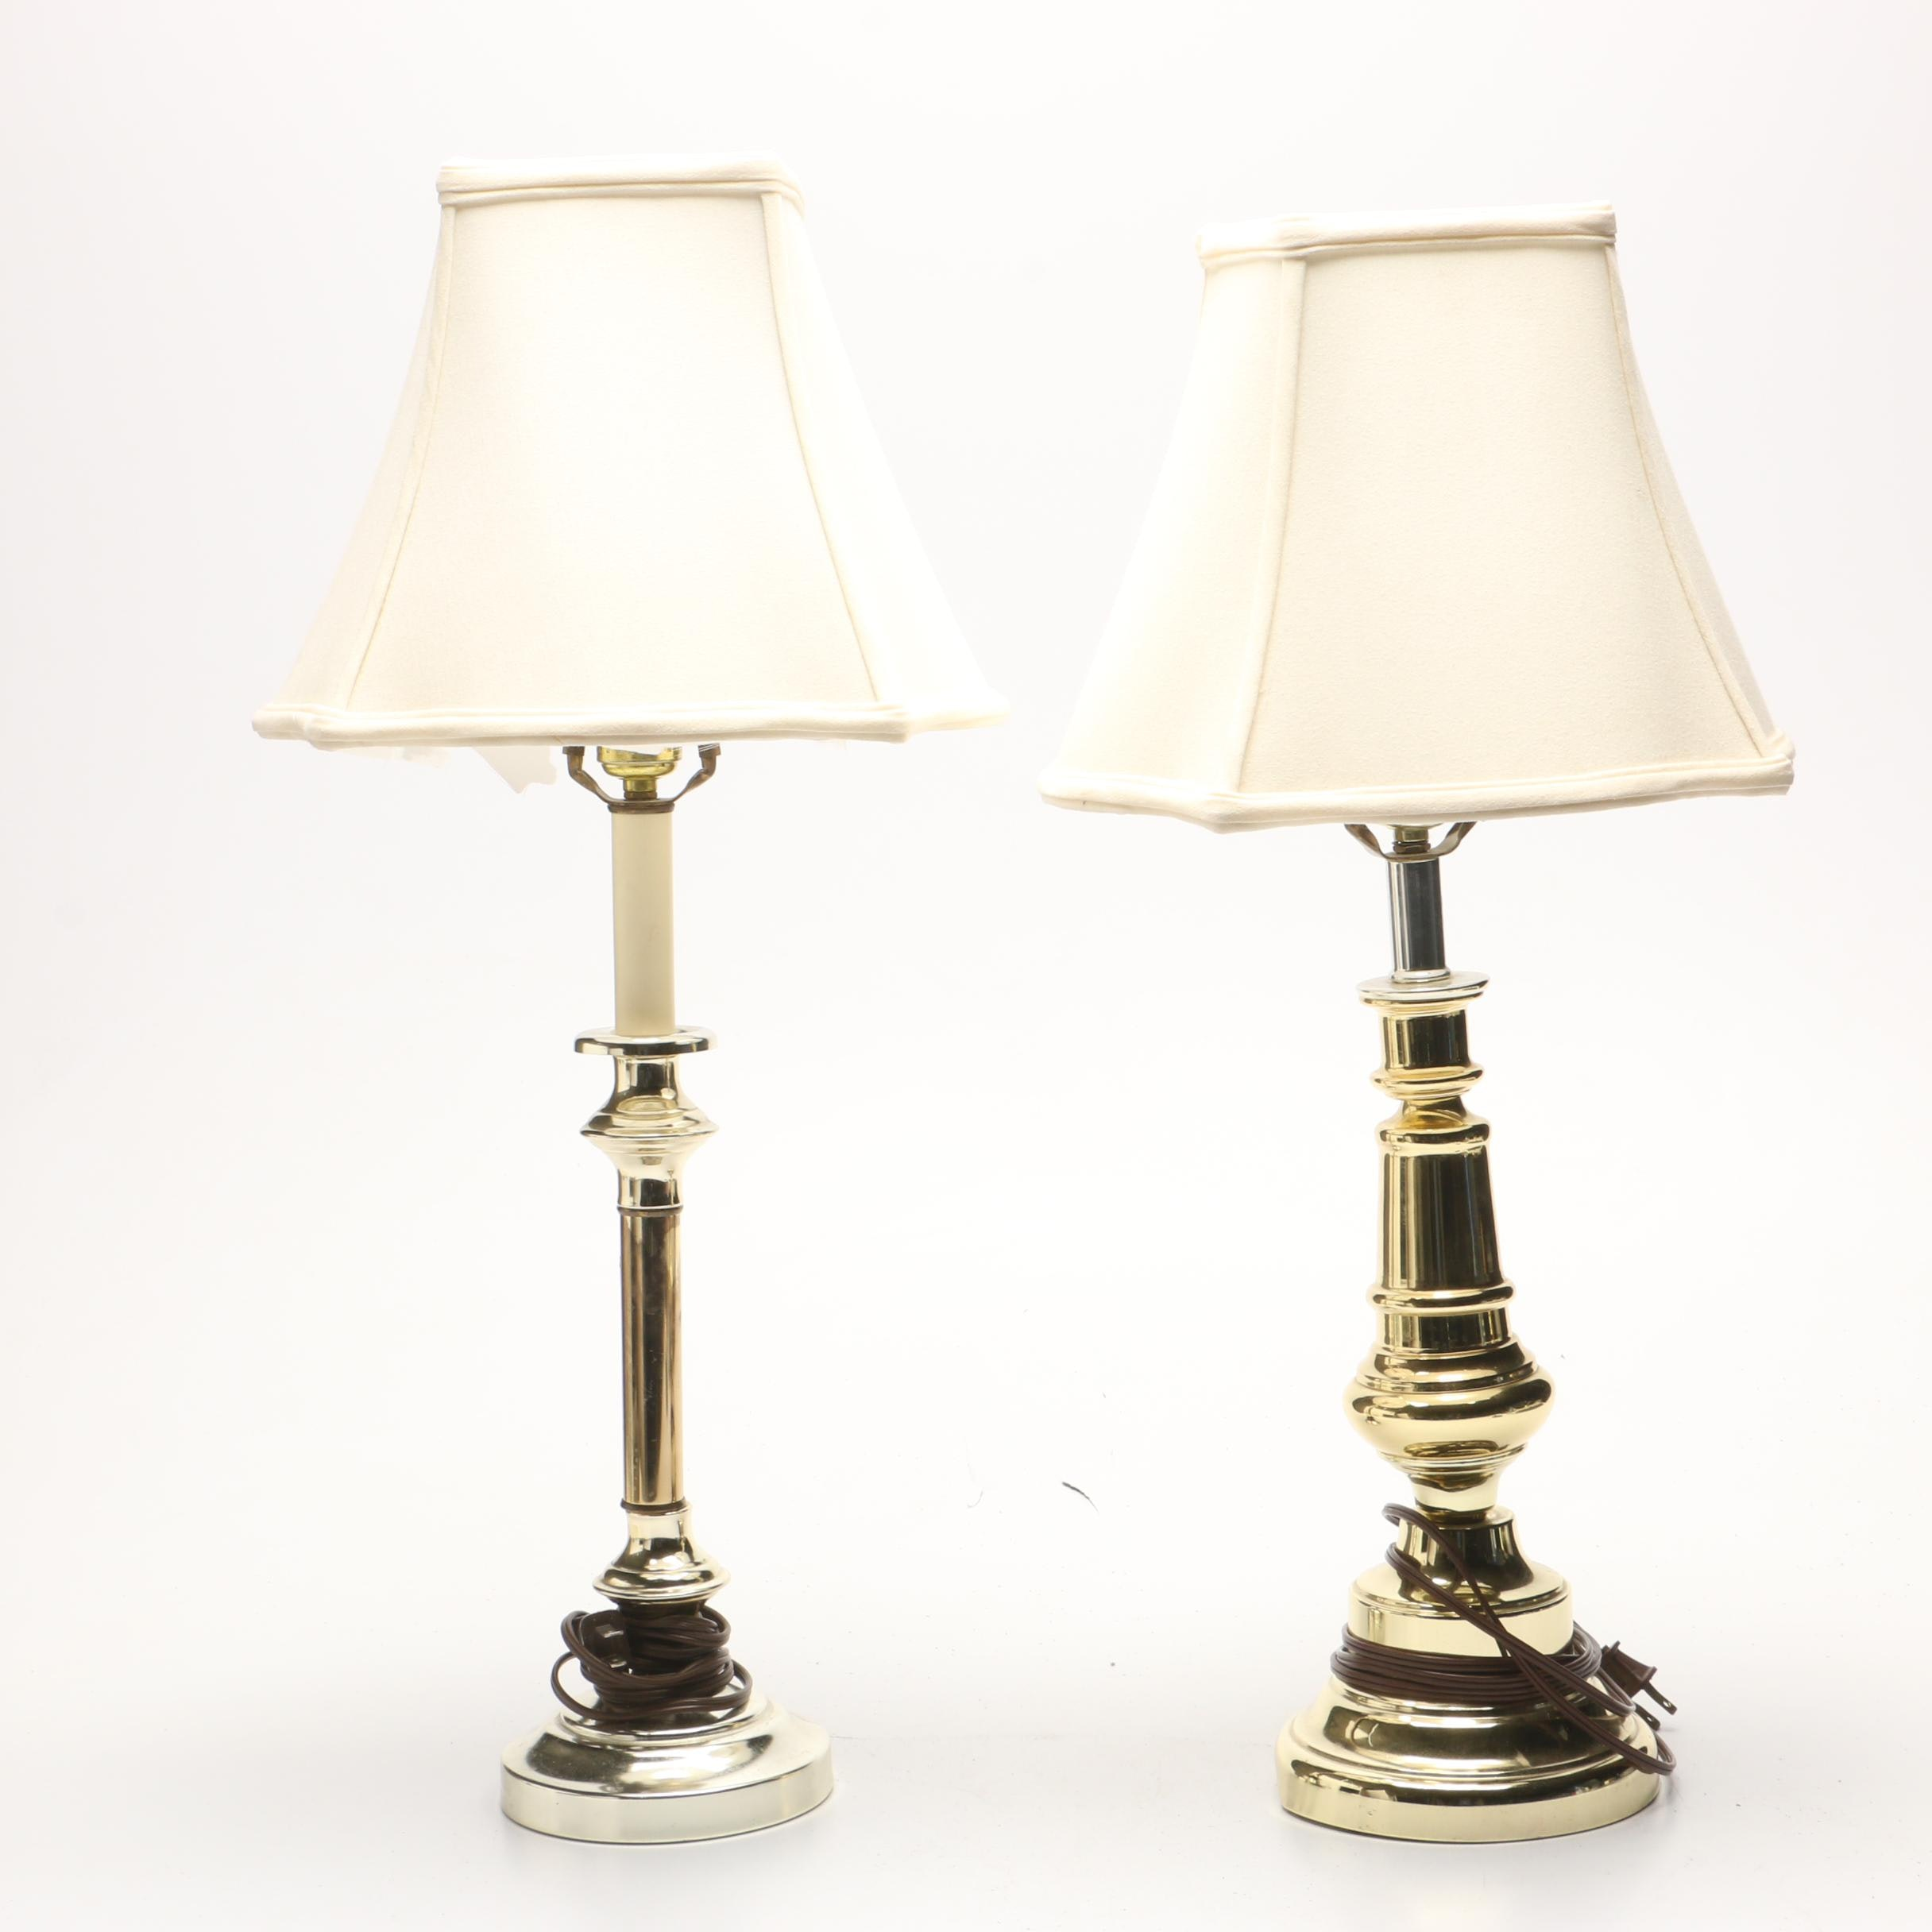 Brass Tone Table Lamps with Shades